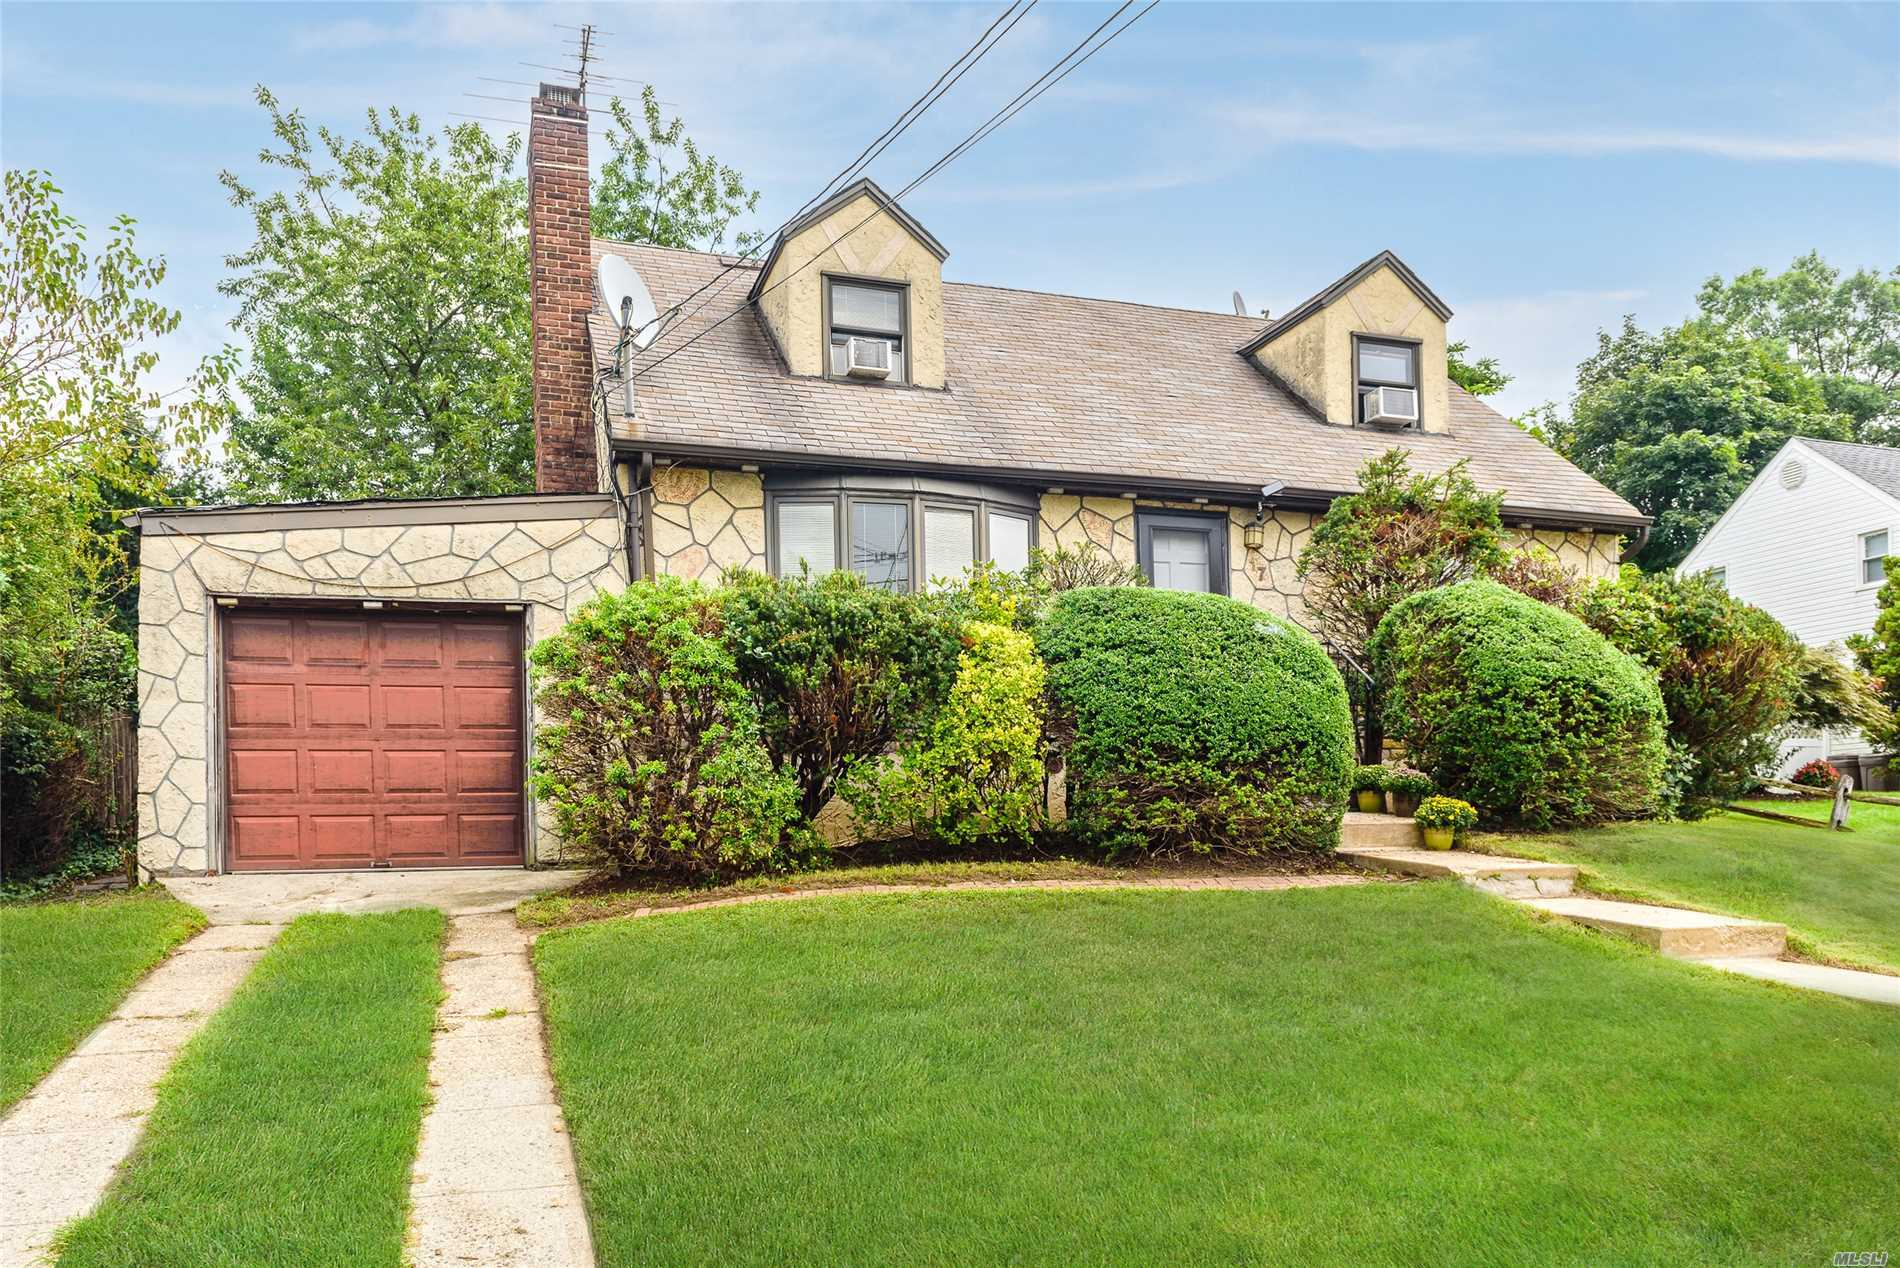 17 Shafter Ave Albertson, NY 11507